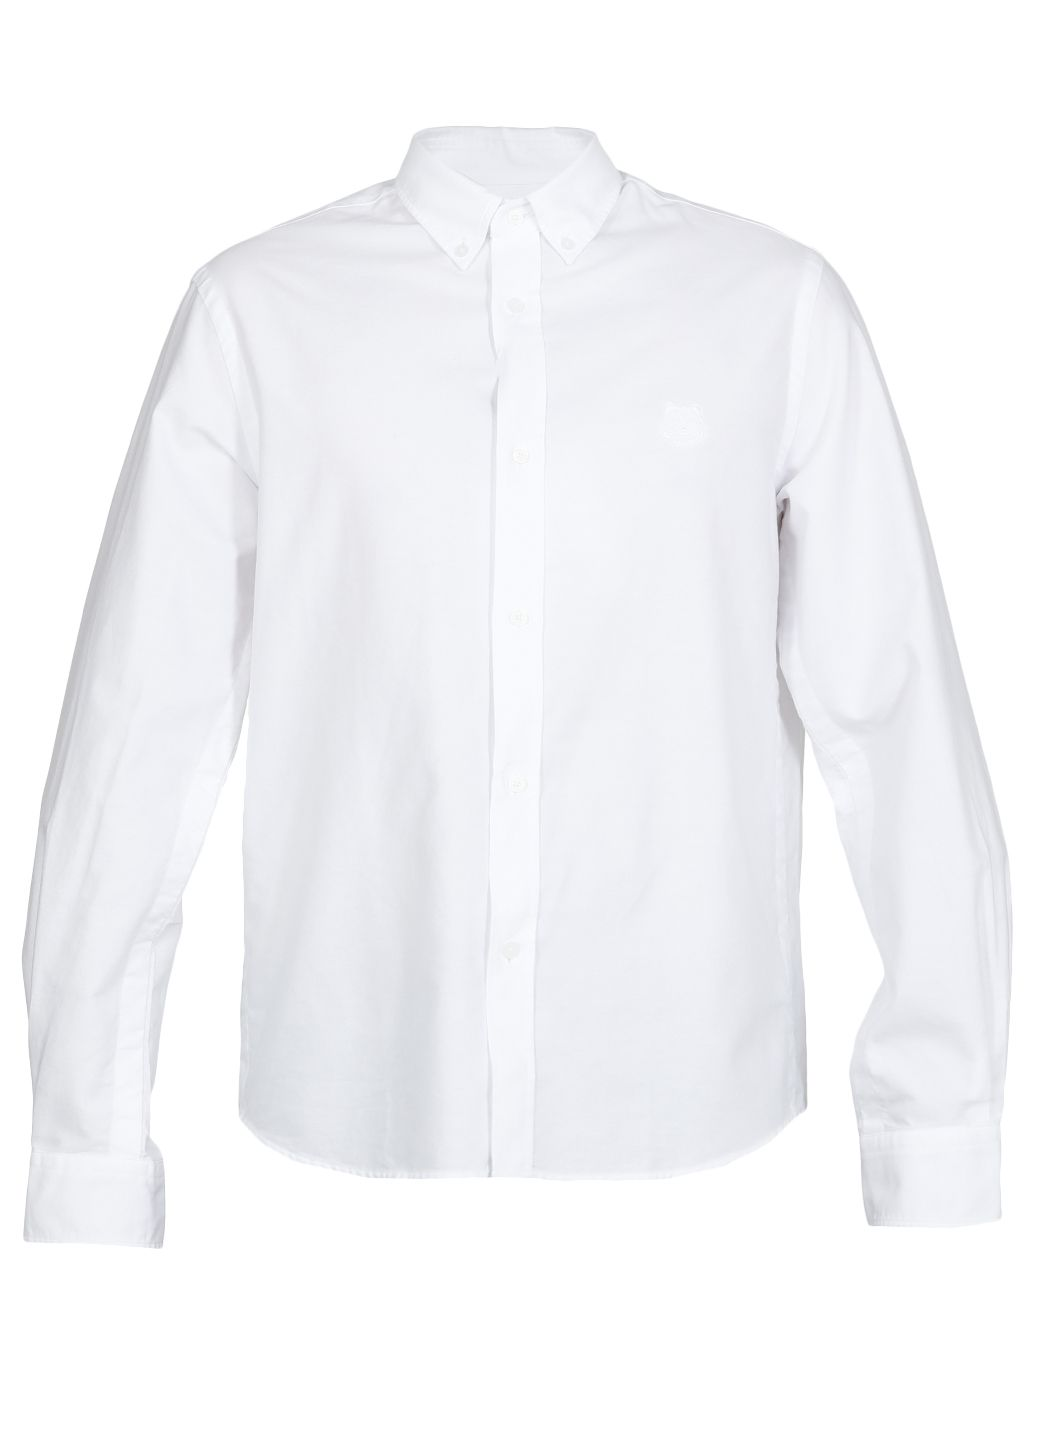 Cotton shirt with logo